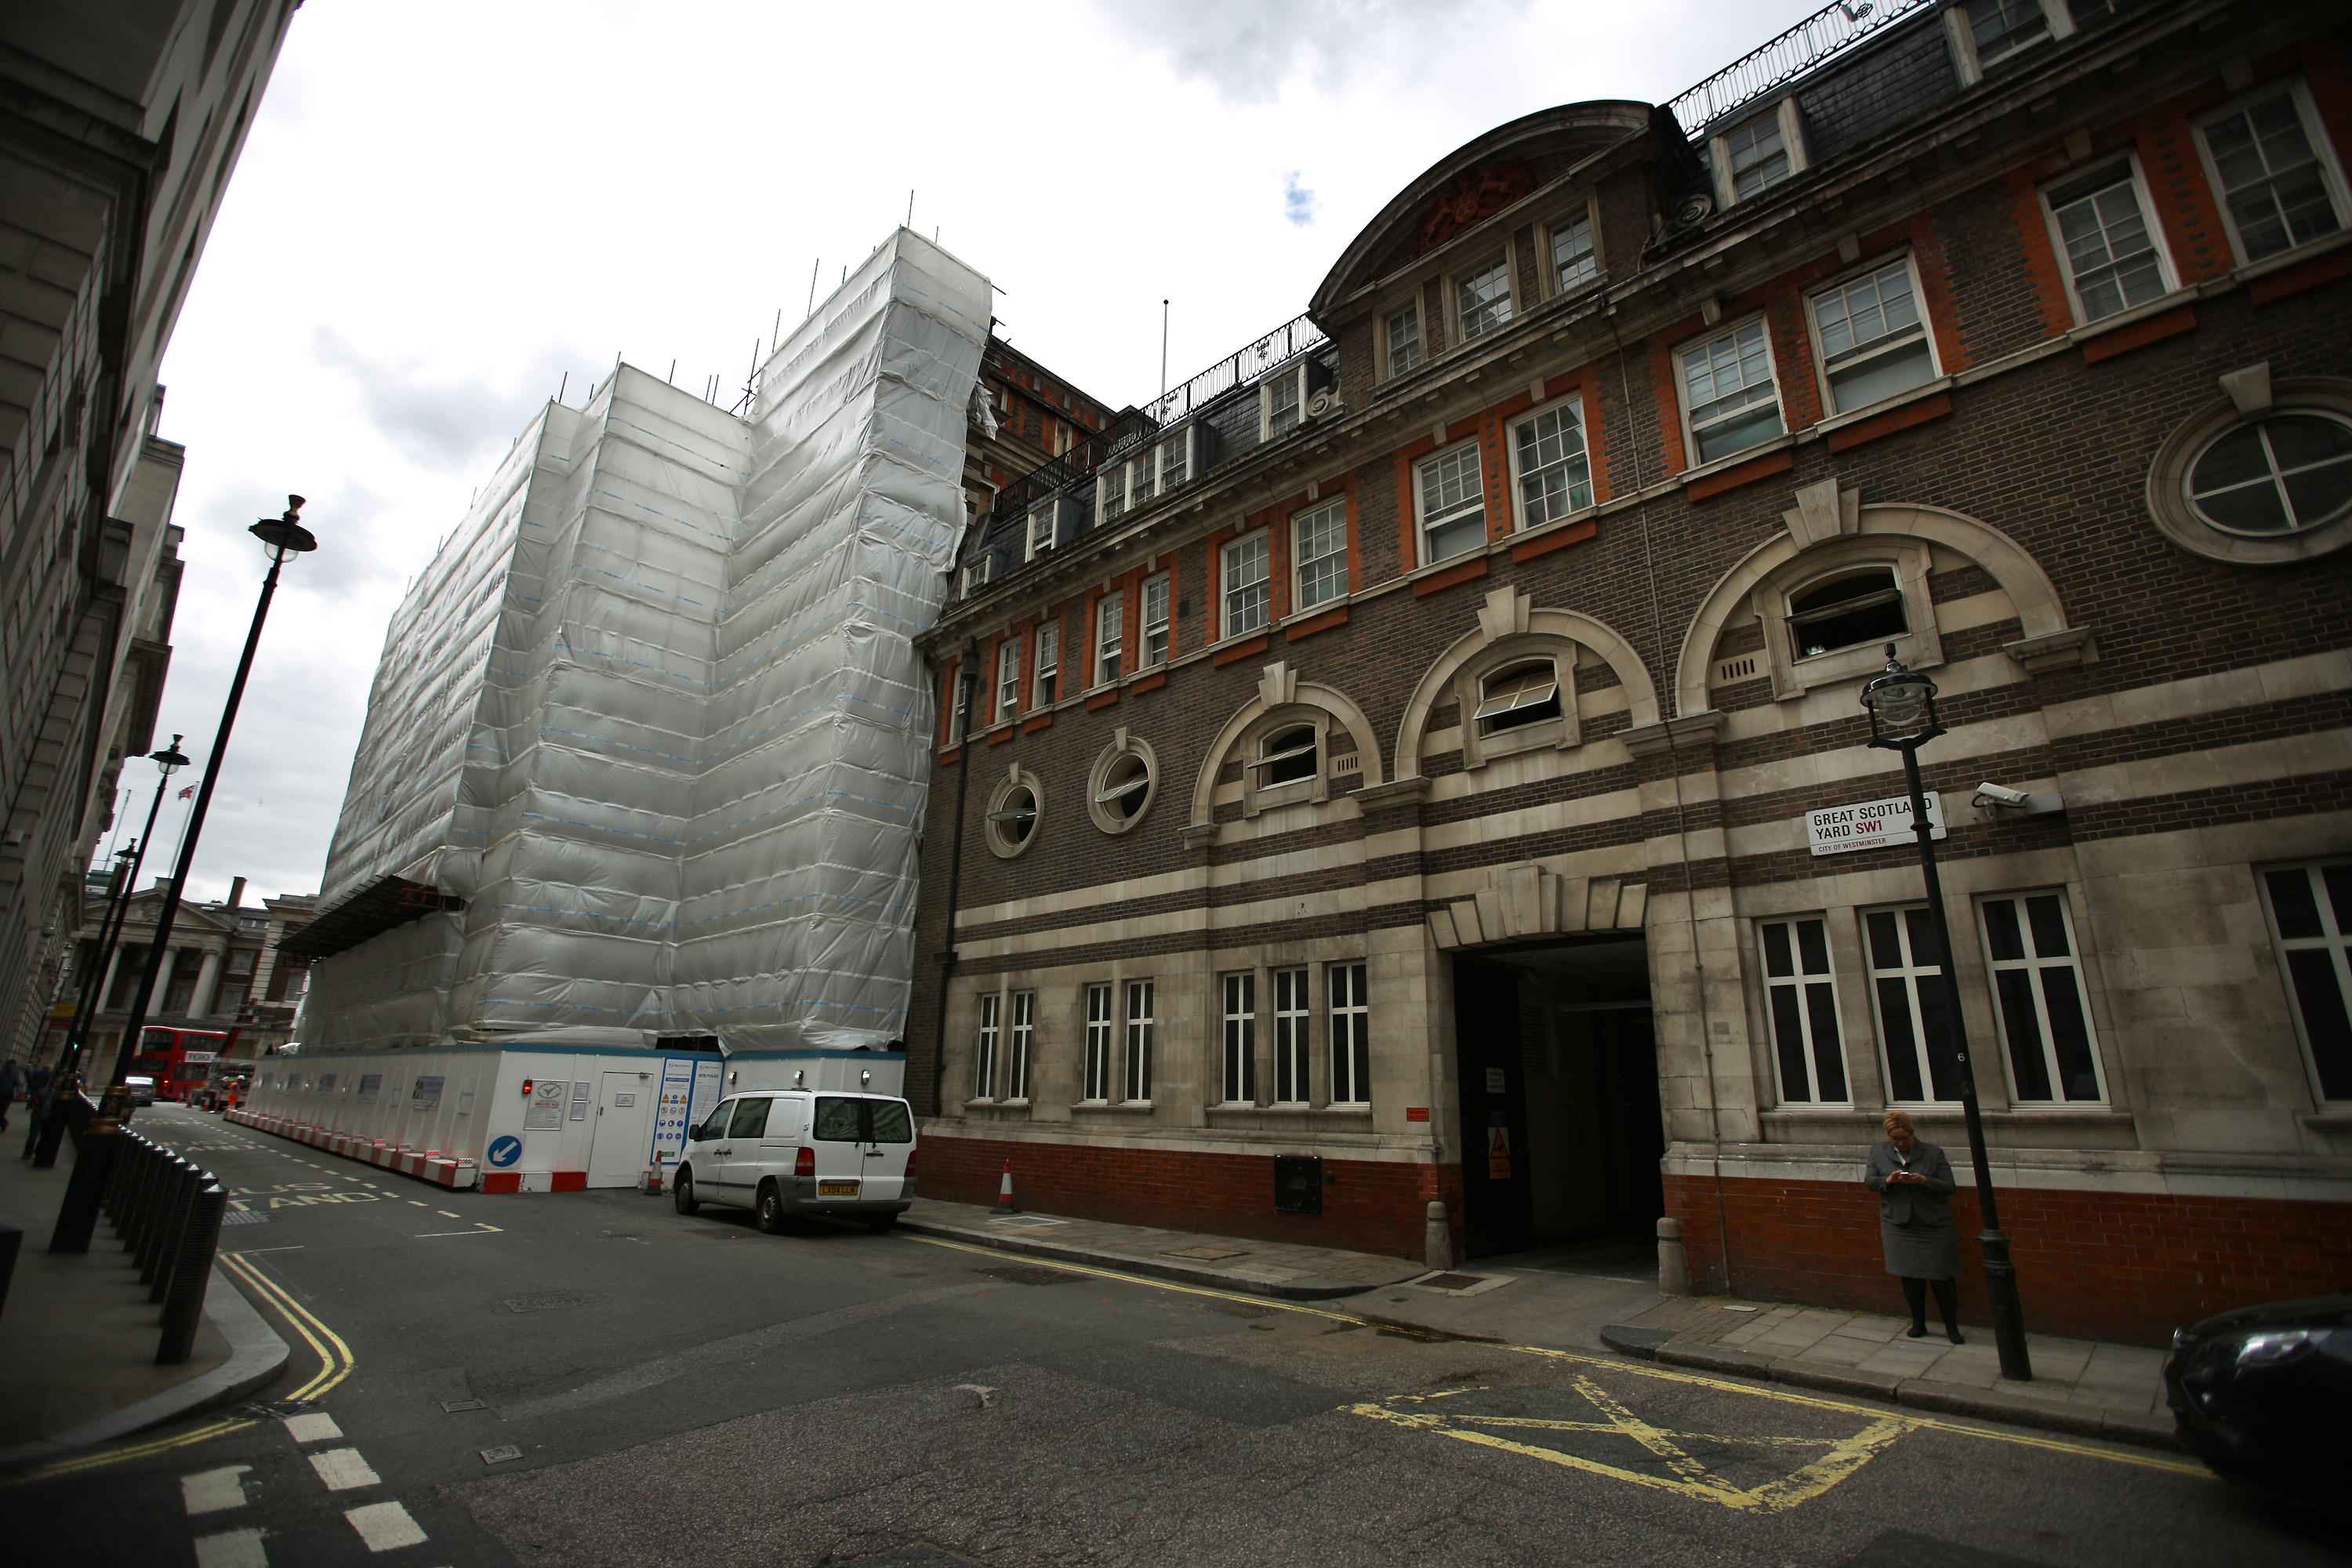 Great Scotland Yard London will become a restaurant and hotel owned by Hyatt